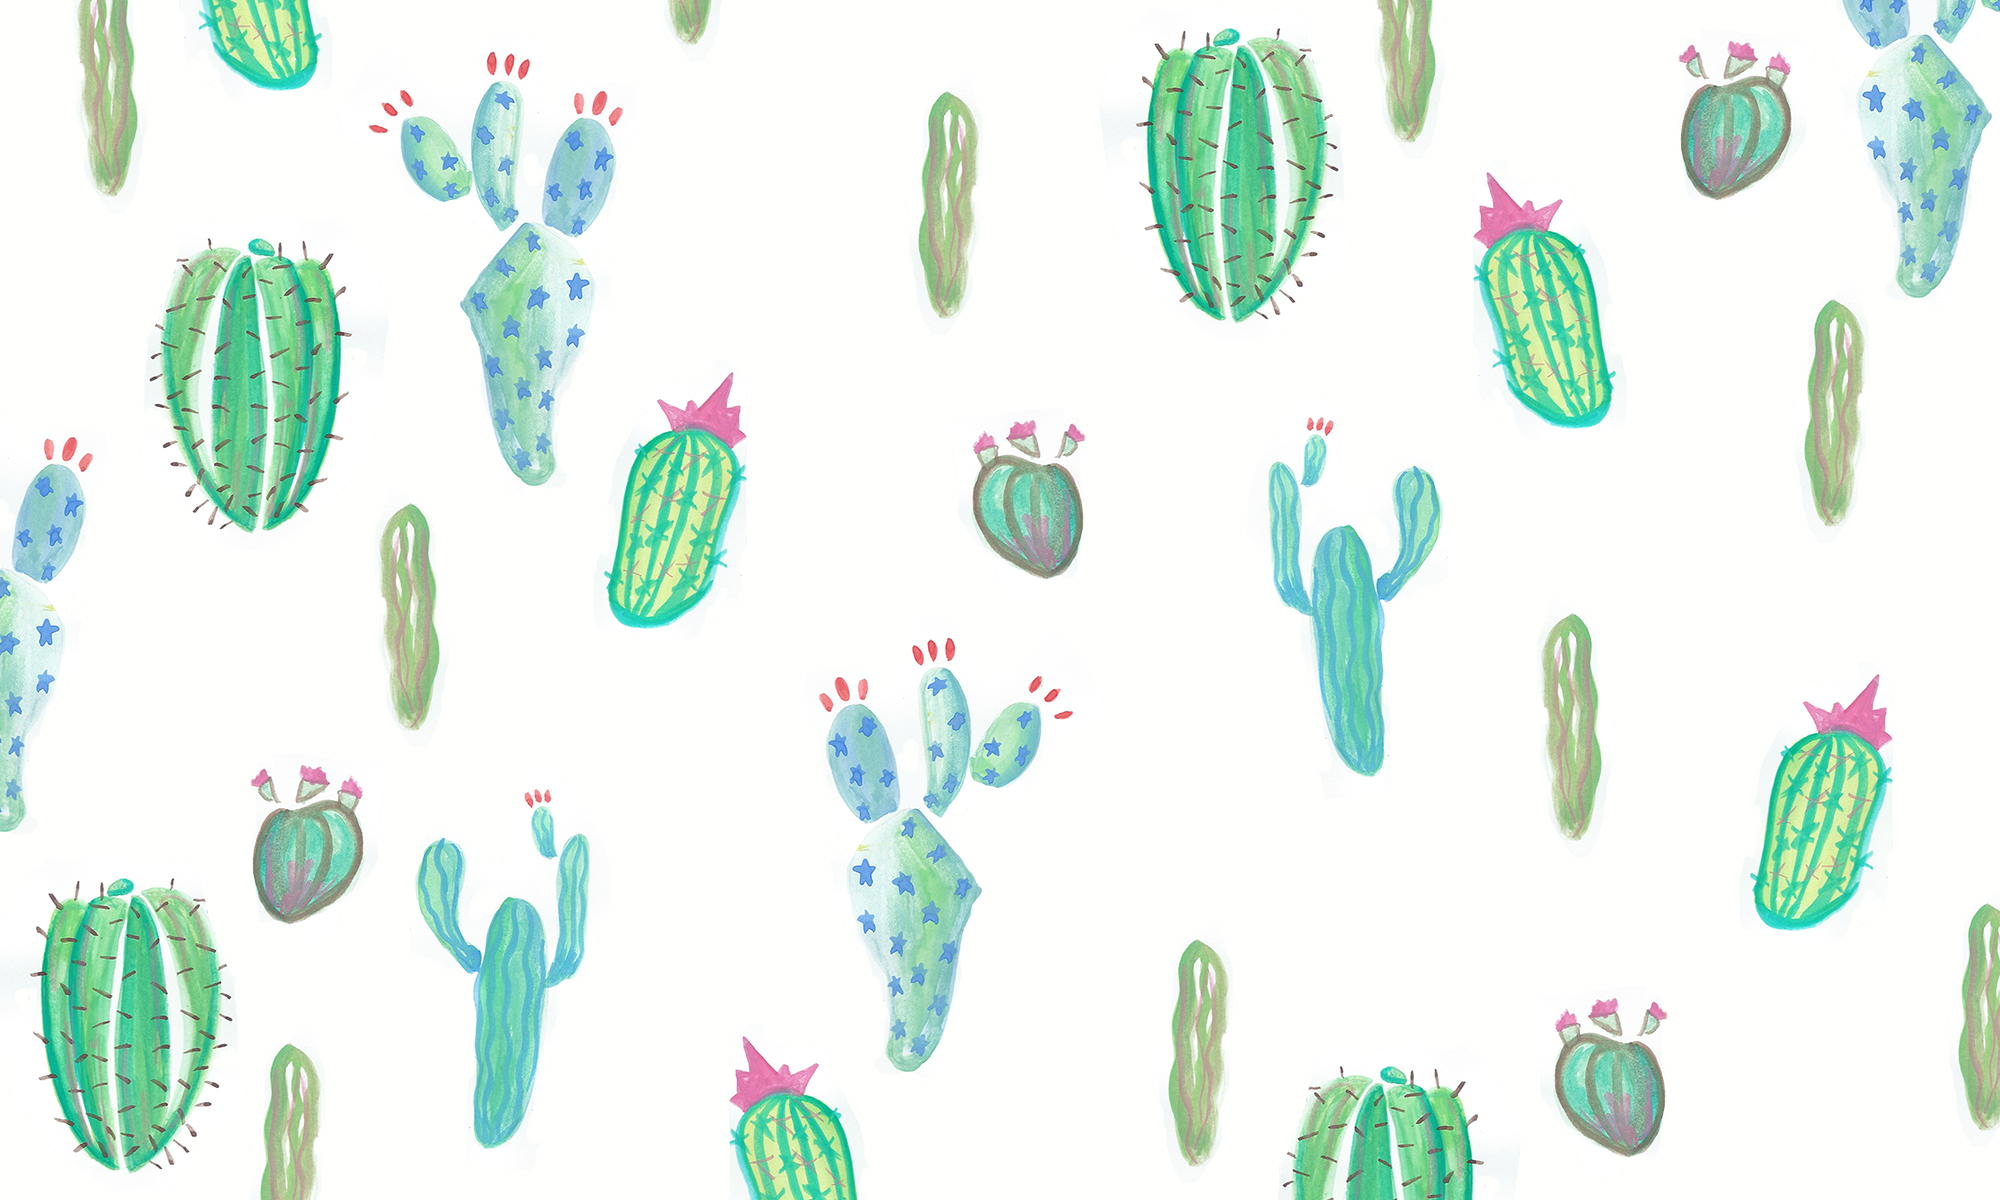 Cactus Pictures Wallpapers 31 Wallpapers Adorable Wallpapers